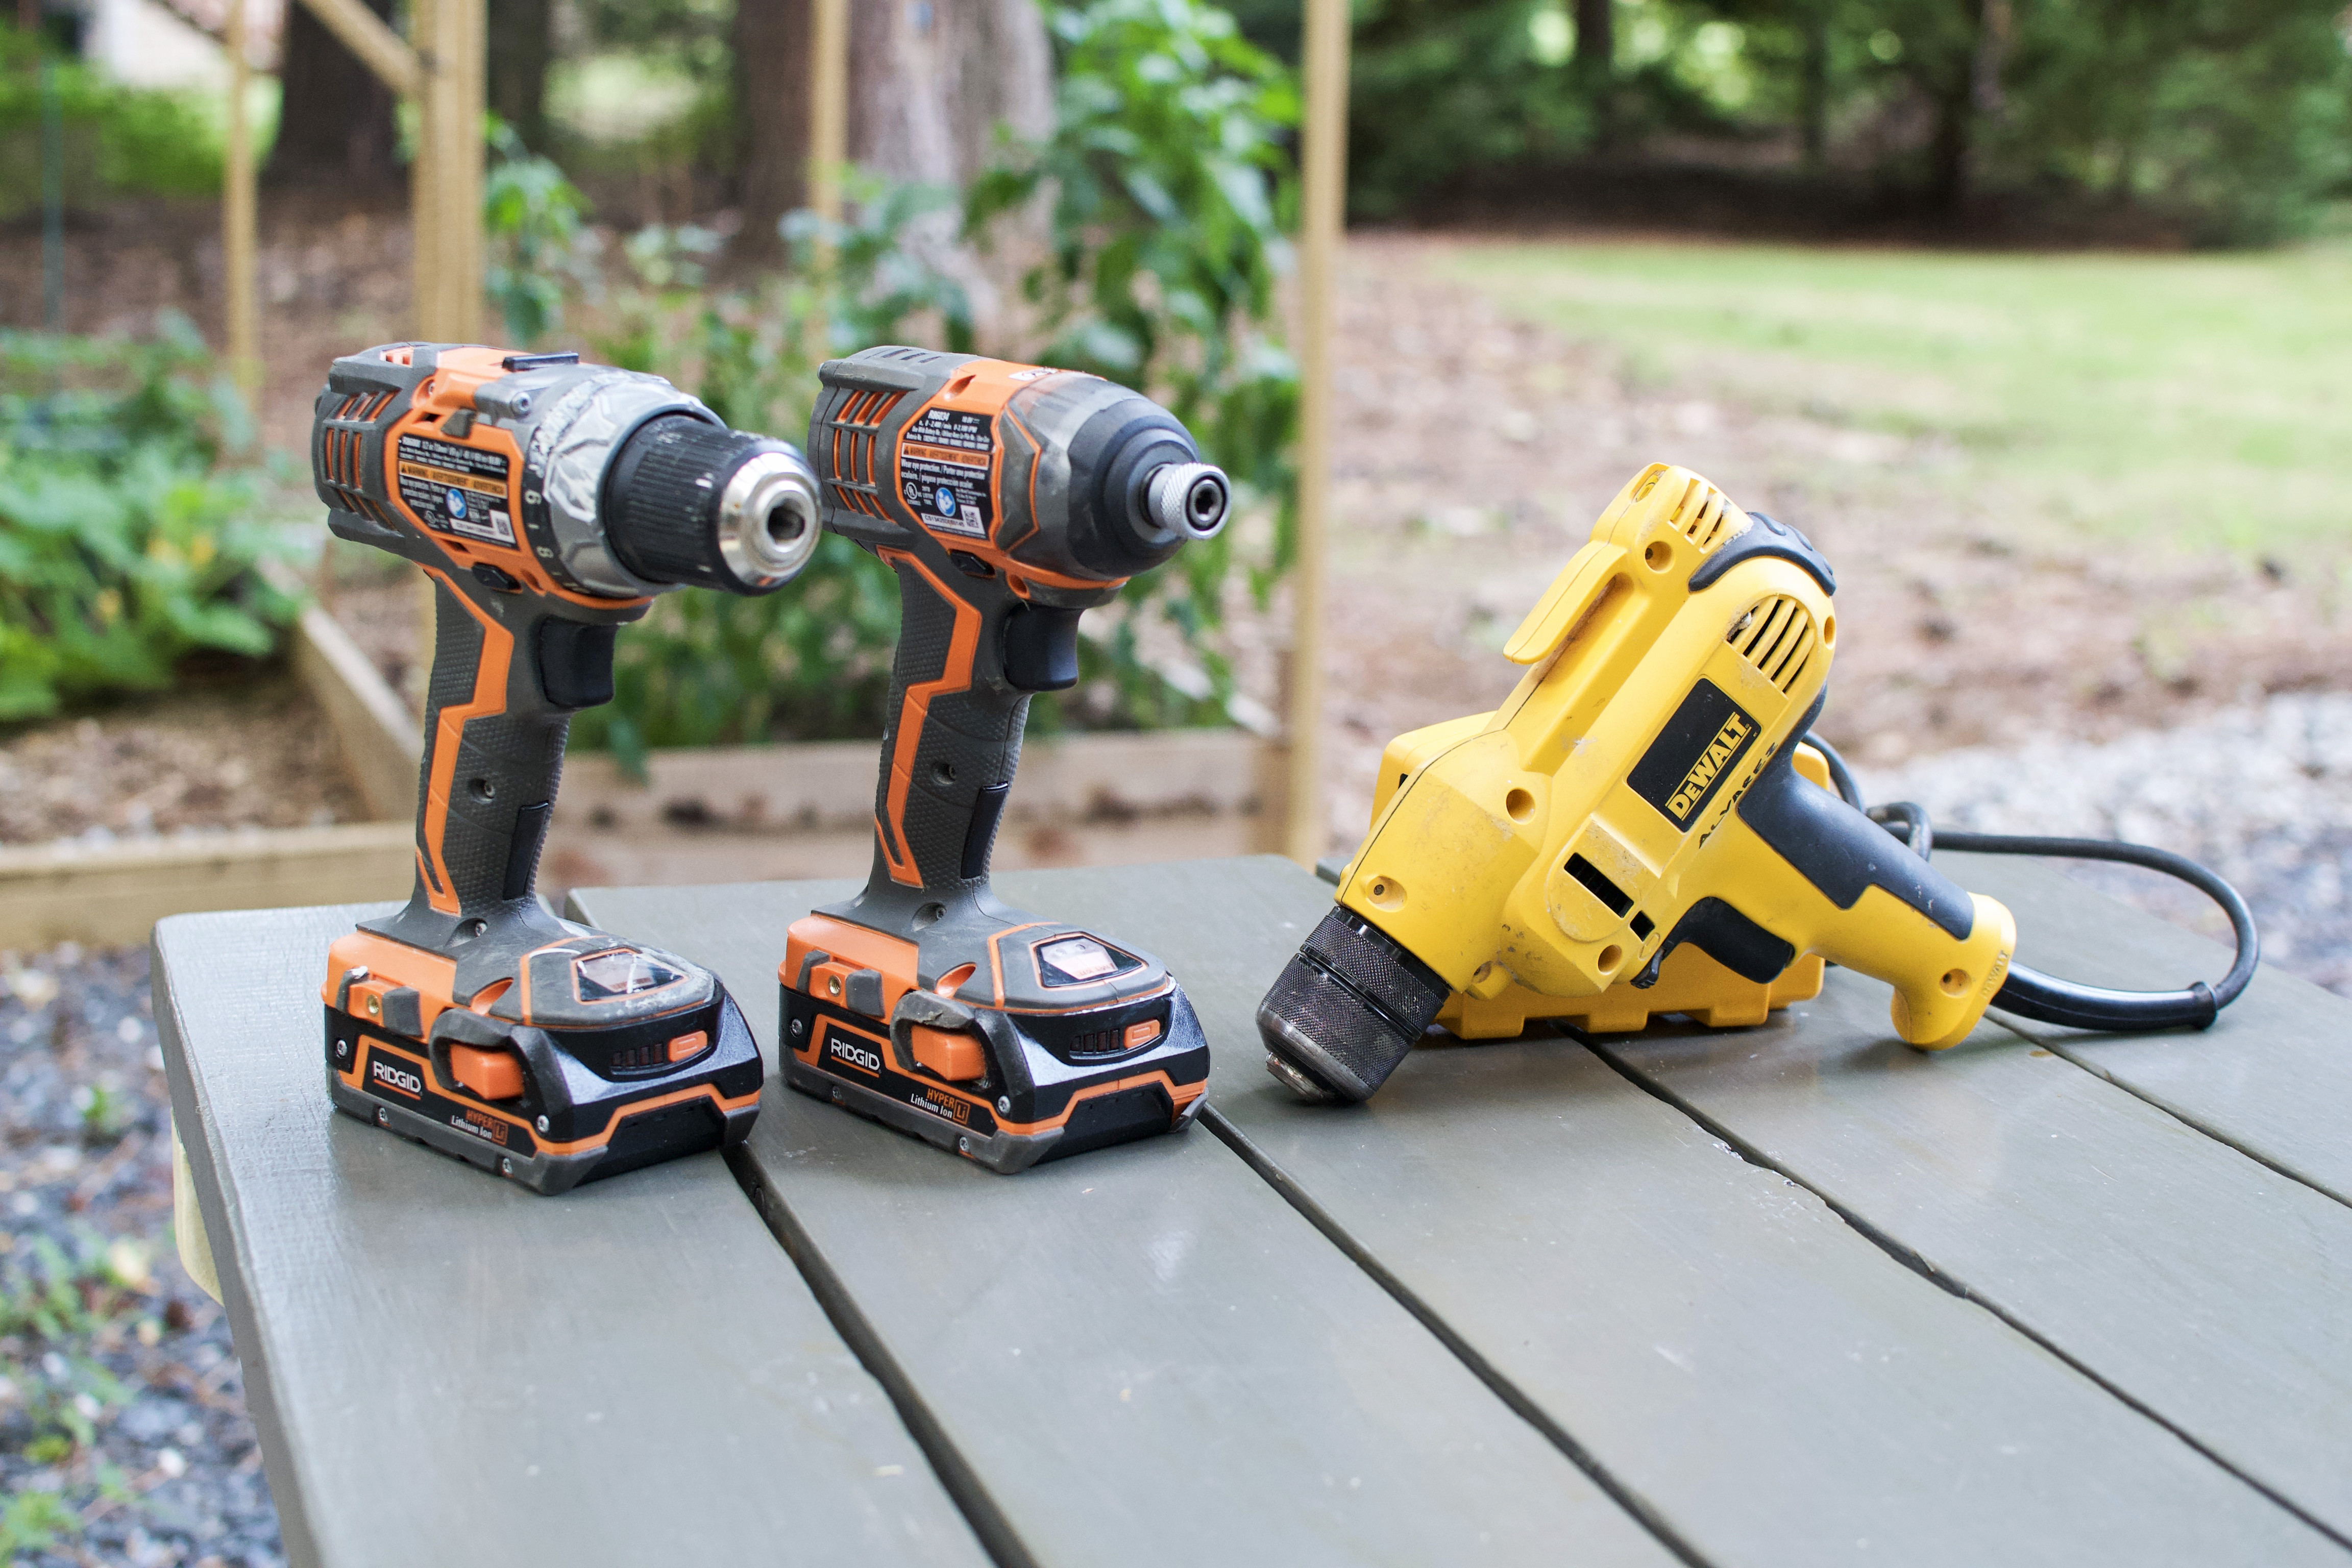 How To Use A Cordless Drill Driver Impact Corded Like Pro